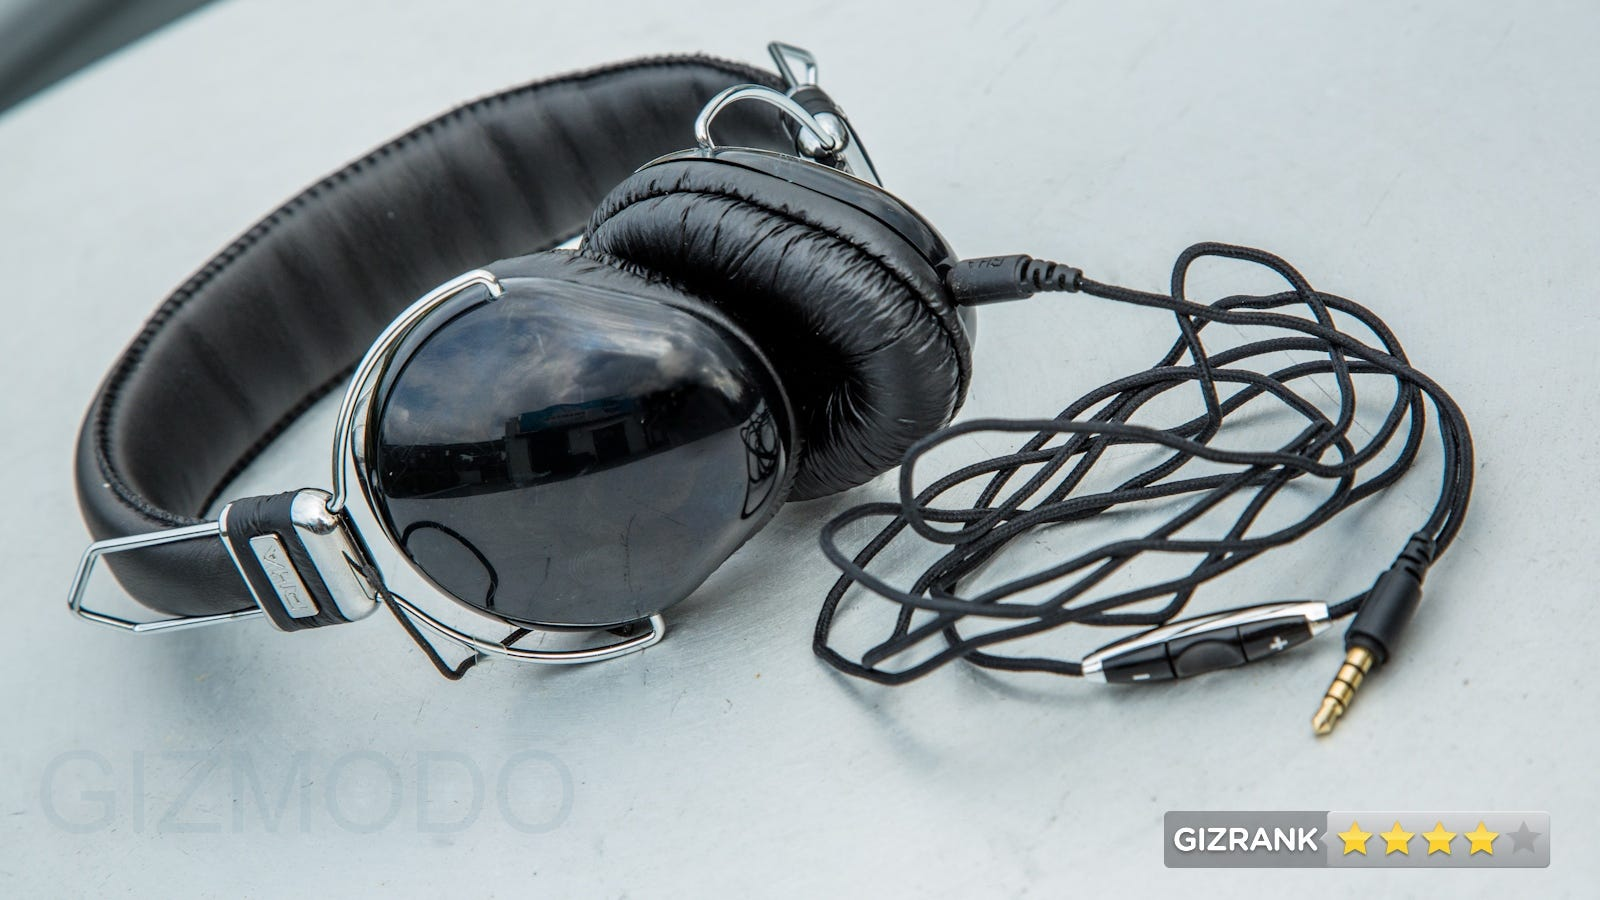 philips tone up earbuds - RHA SA950i Review: The Perfect Pair of Cheap Headphones